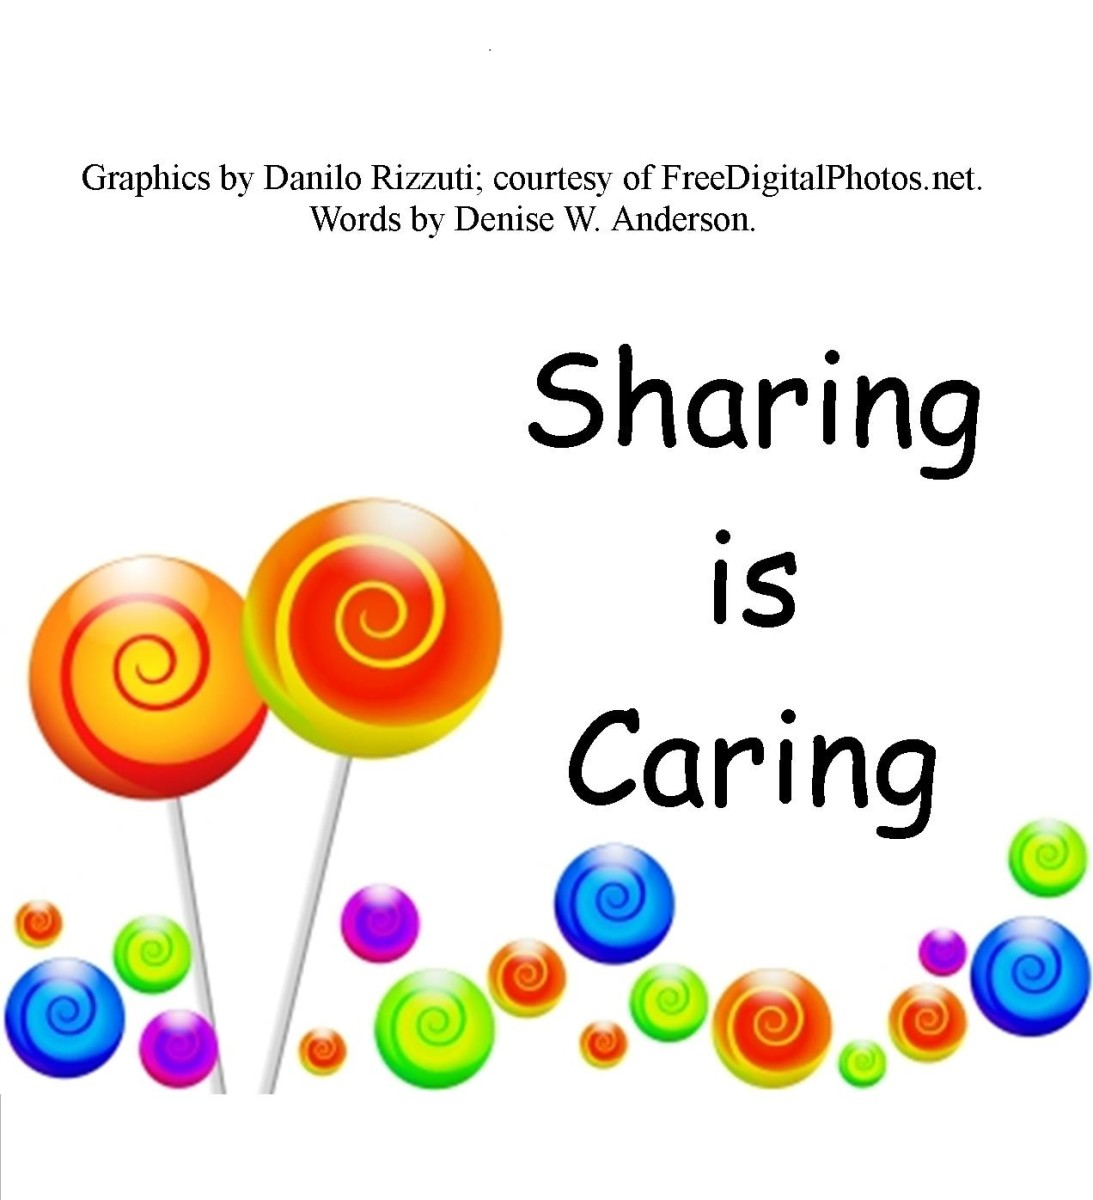 When children learn to care for one another, the are much more likely to share.